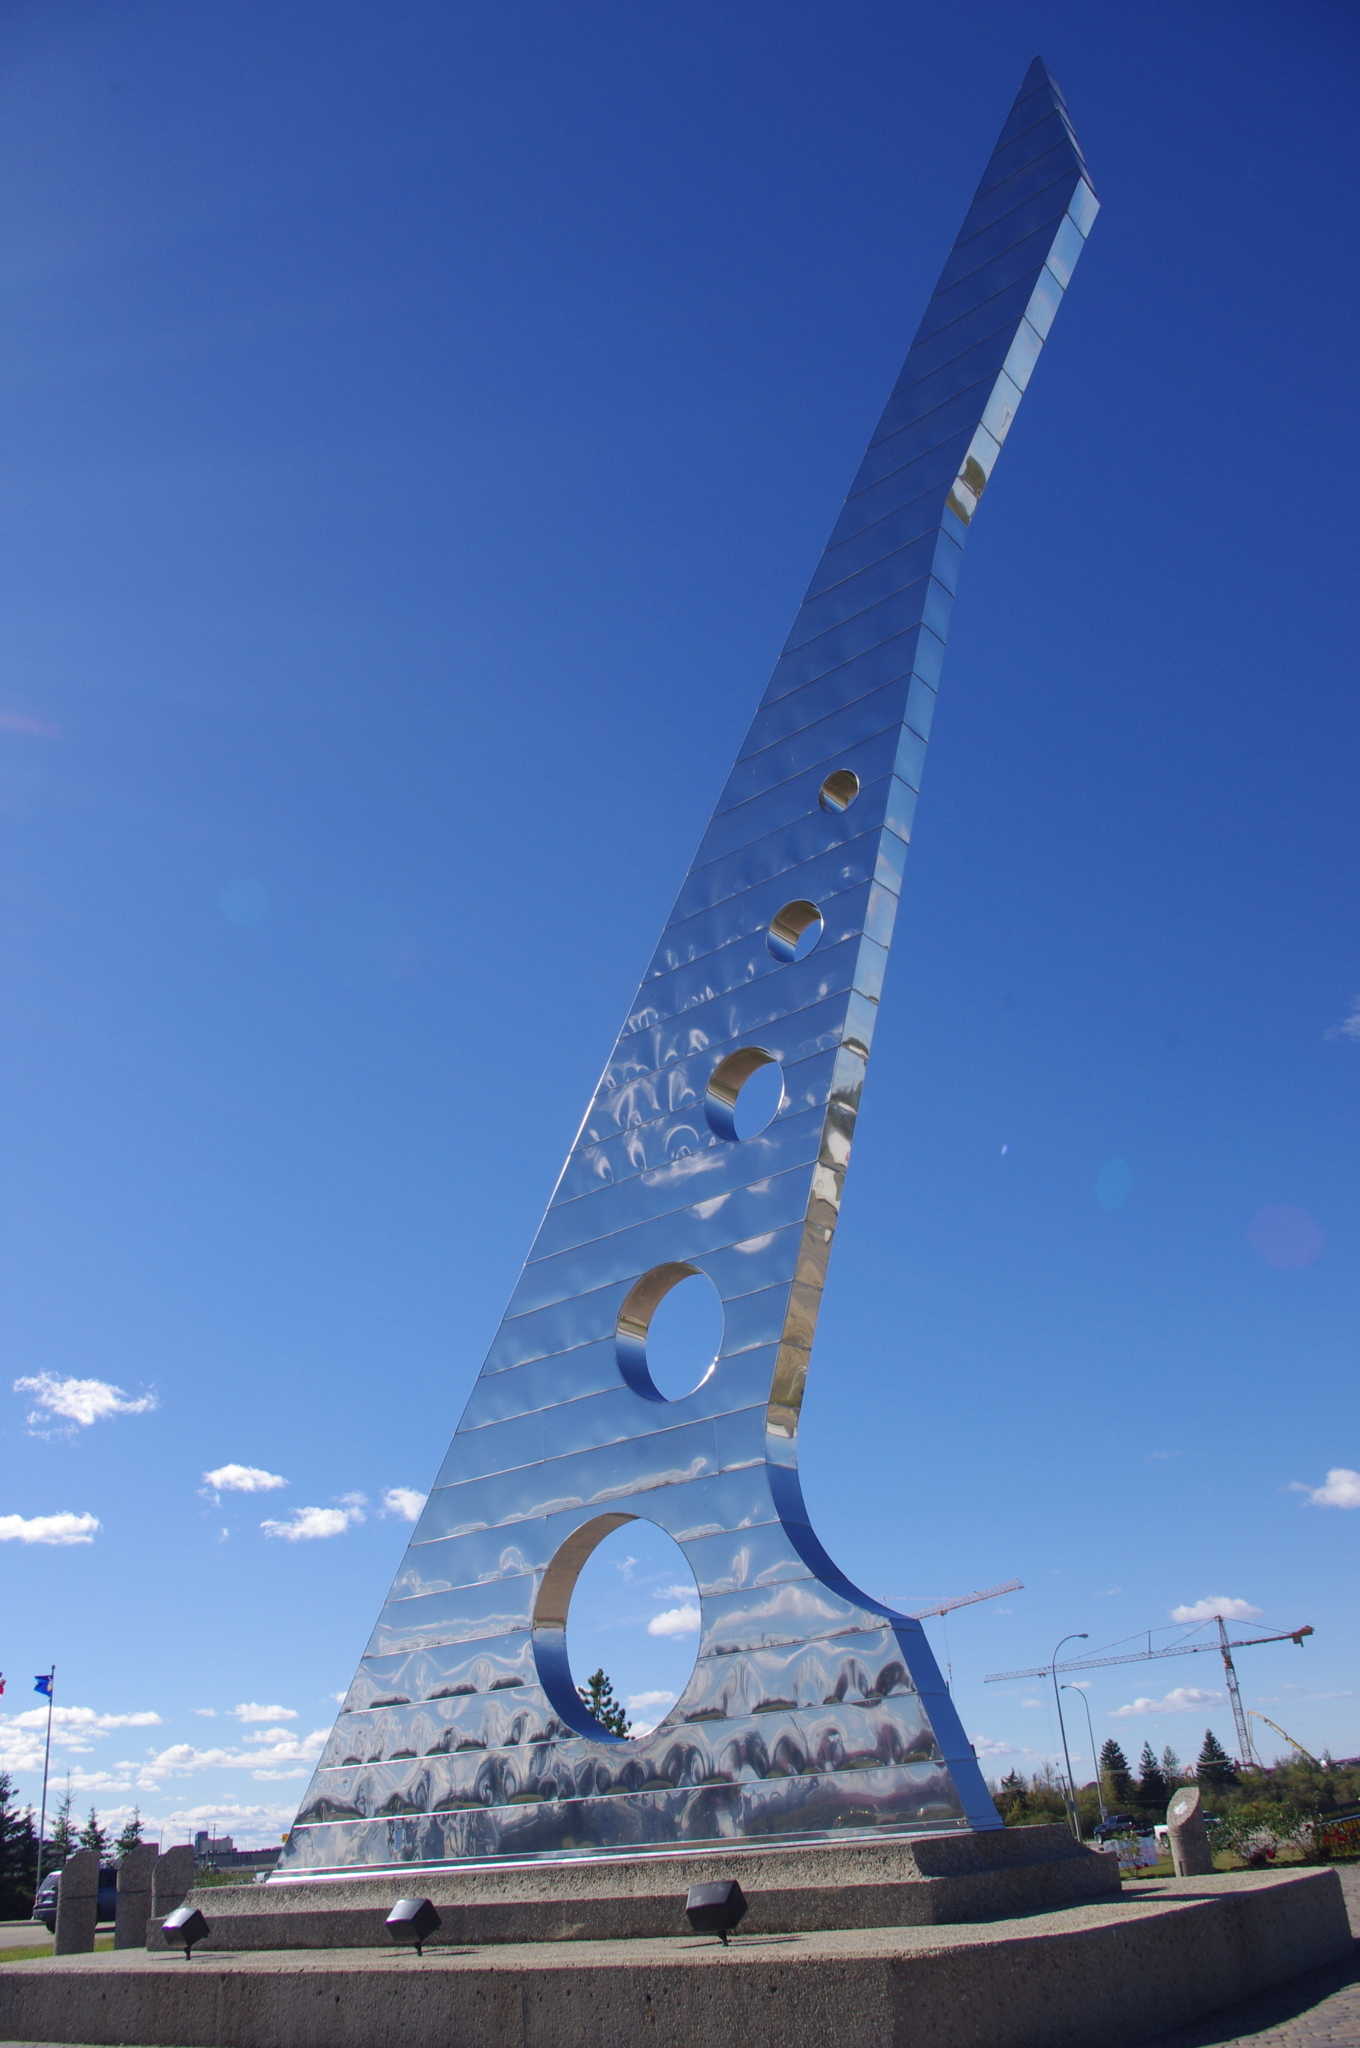 LSM-Lee's Sheet Metal Ltd à Grande Prairie: Sundial at Centre 2000 - LSM Custom Manufacturing and Fabrication.